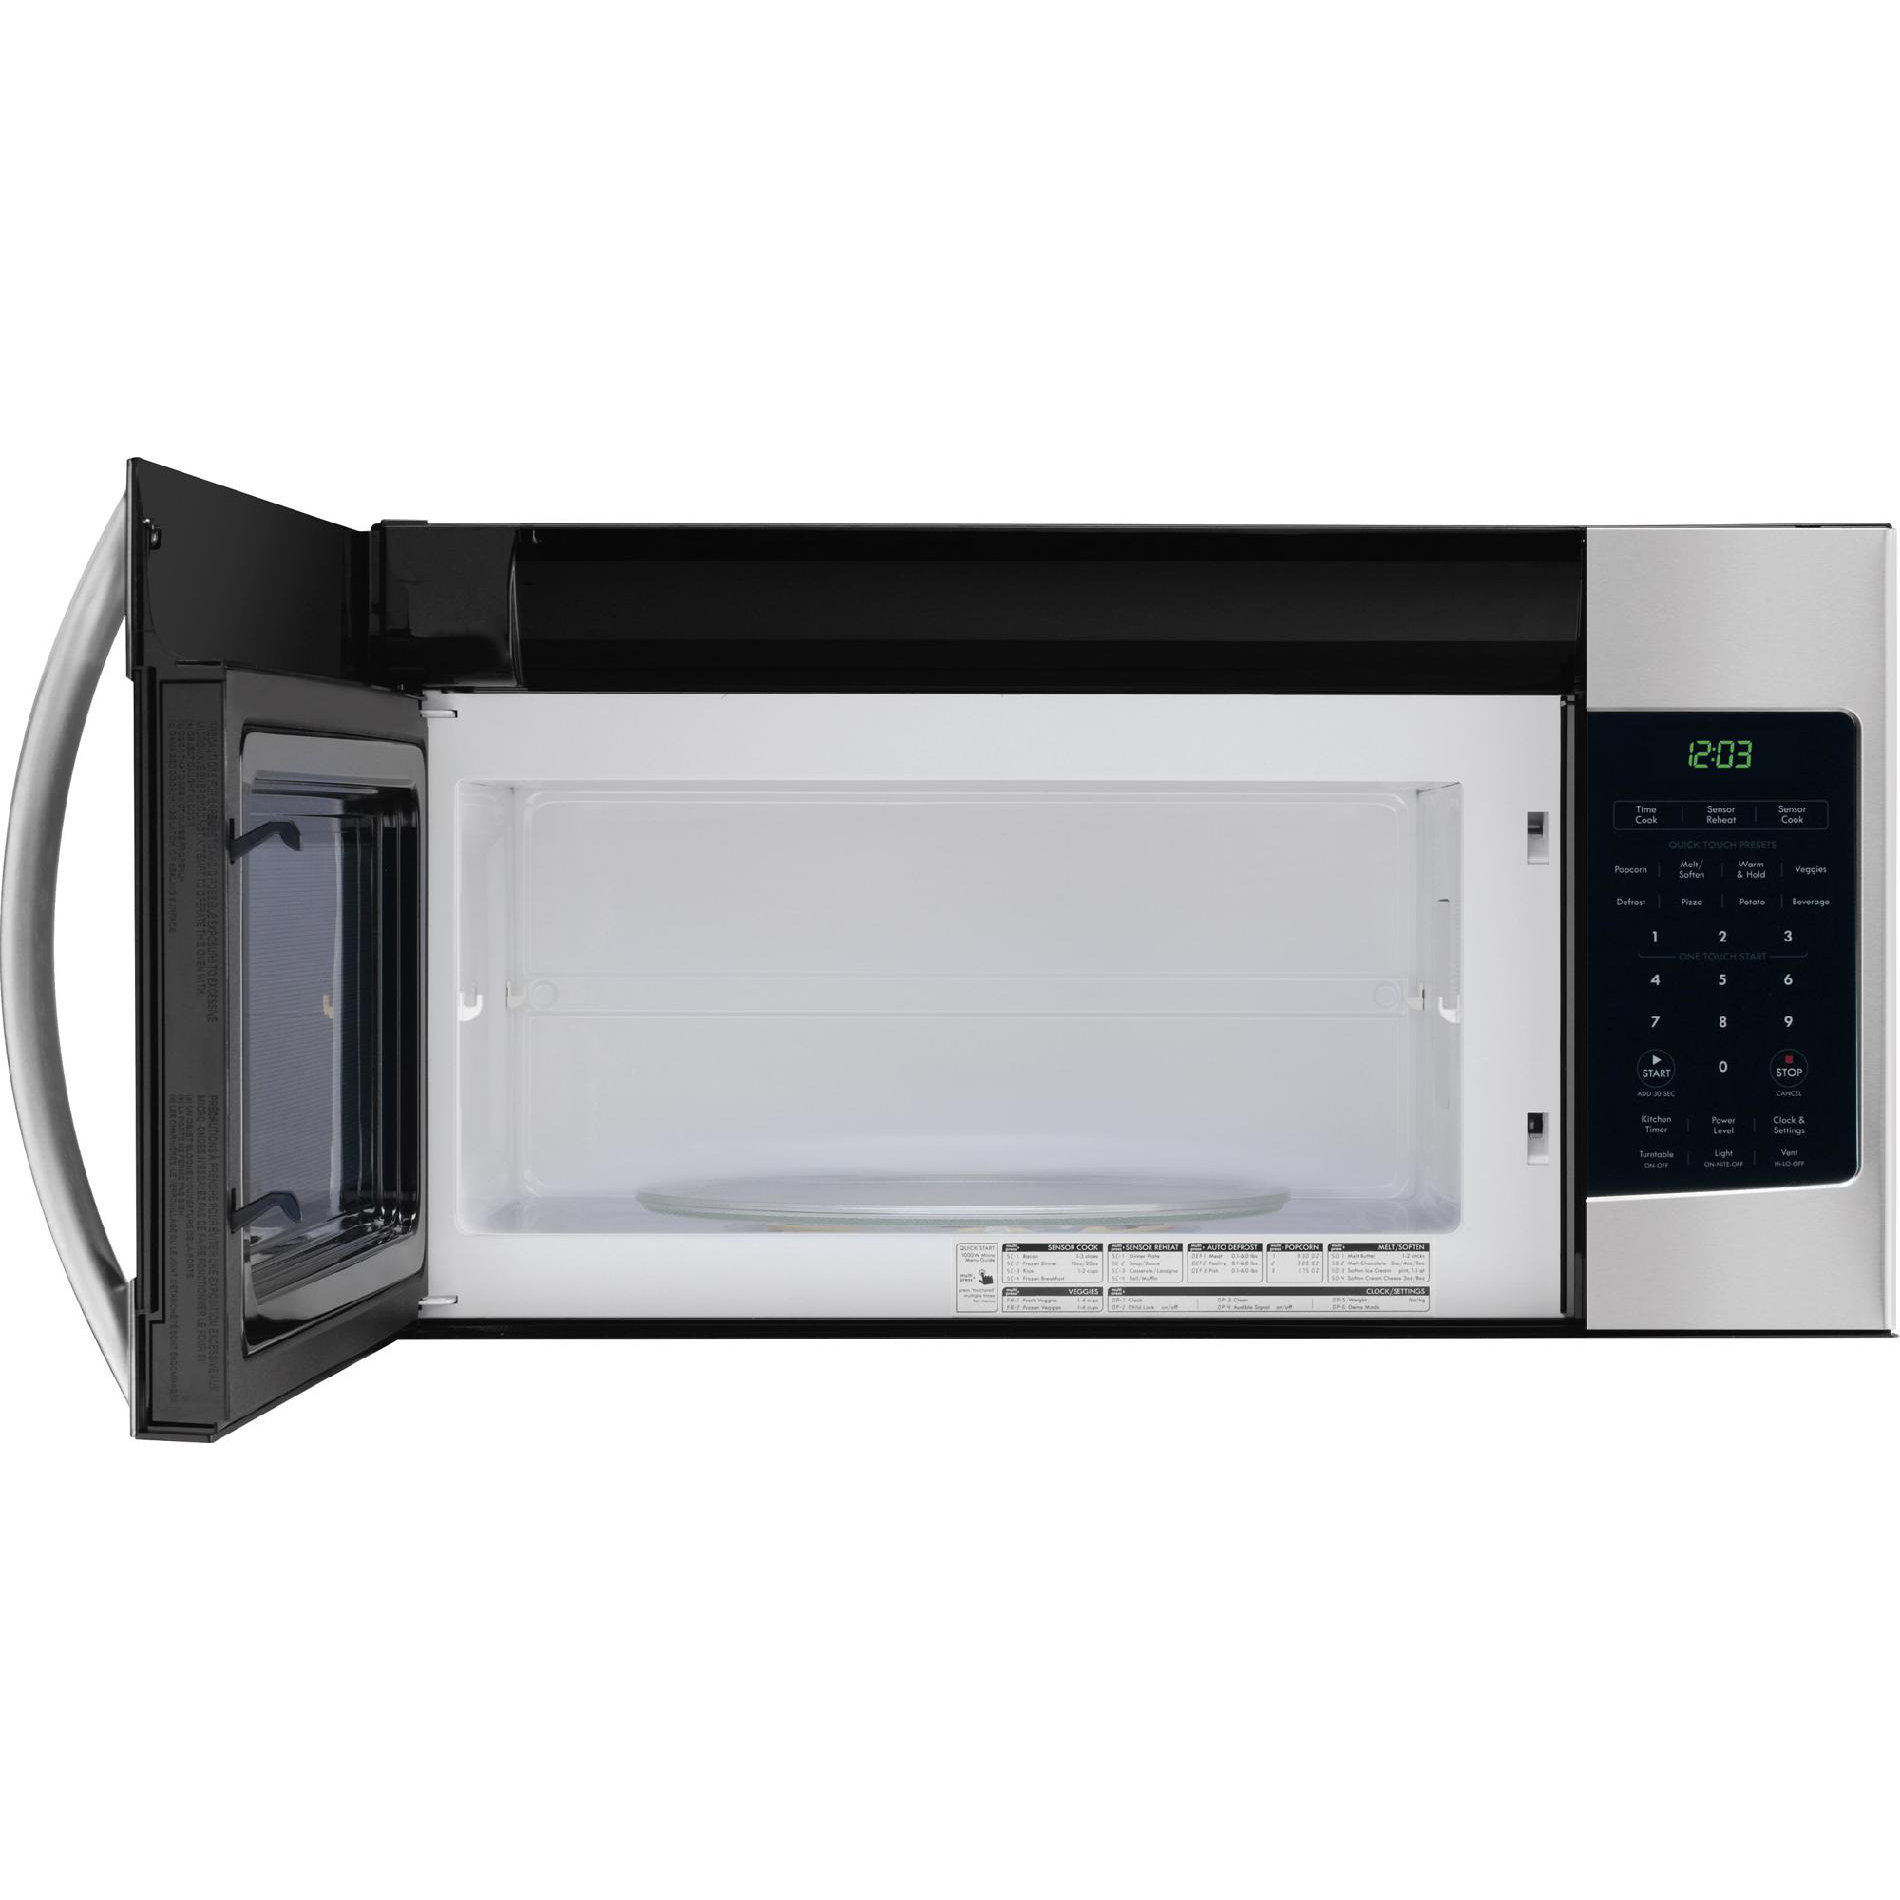 kenmore 80333 1 7 cu ft over the